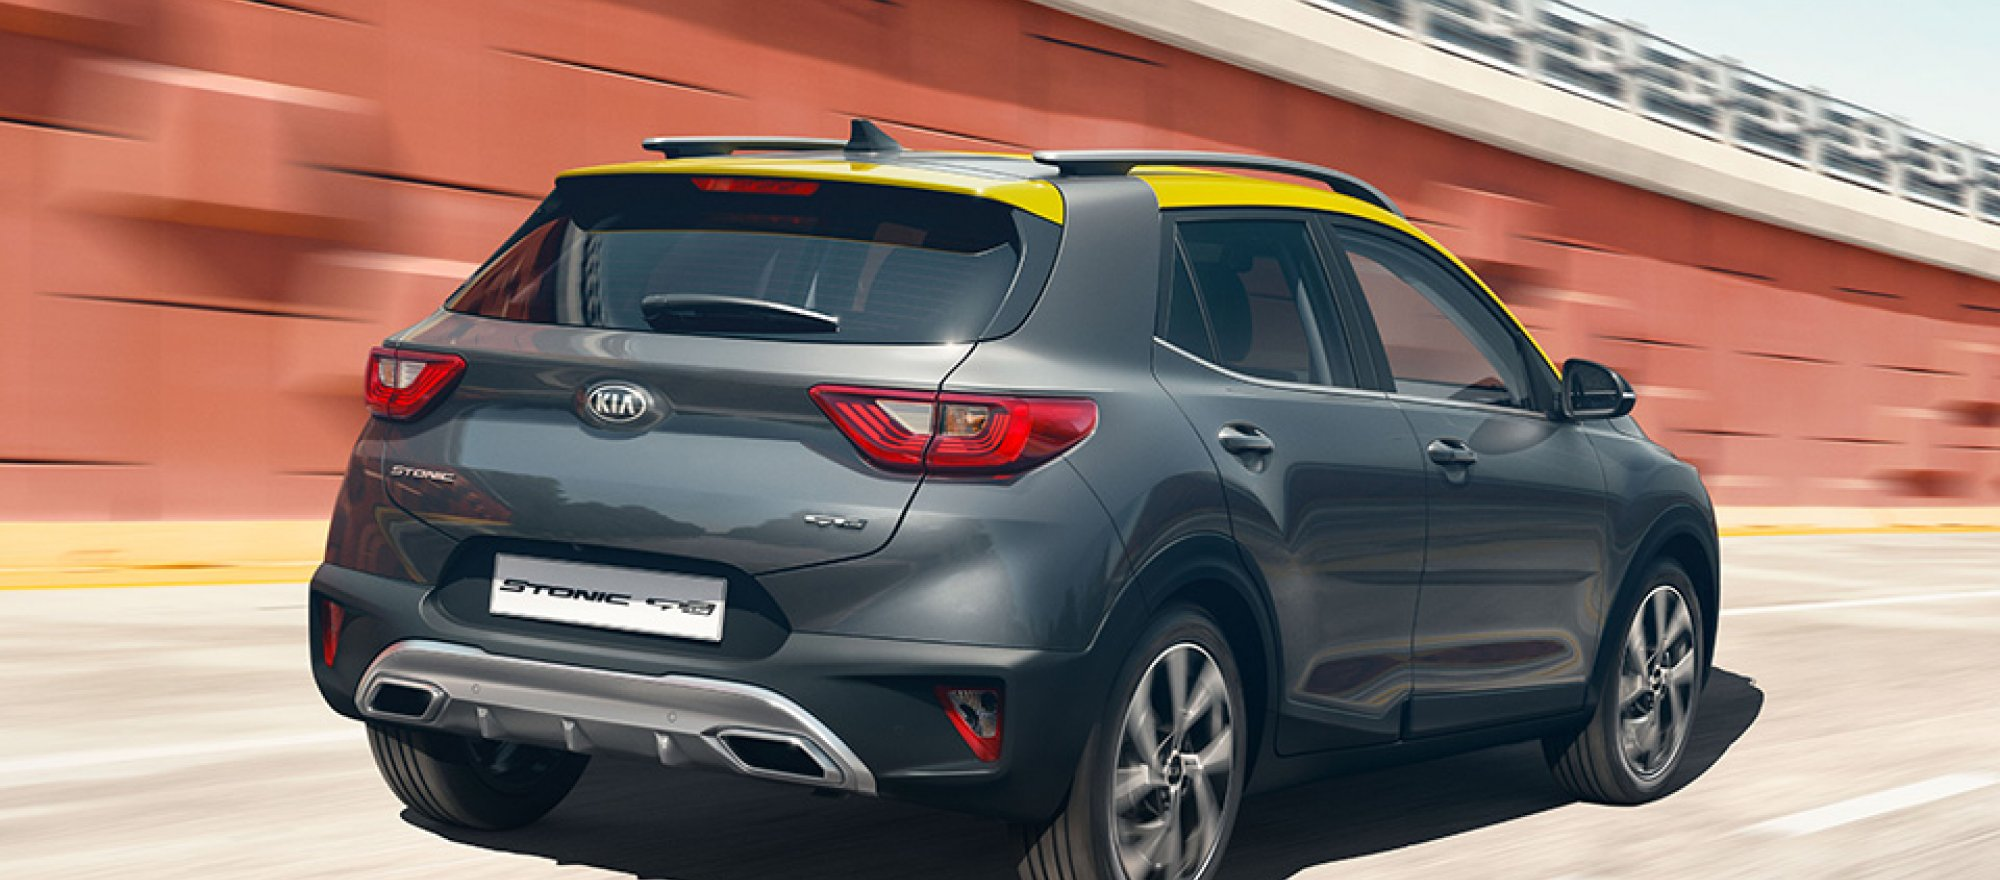 Rear styling with confident poise